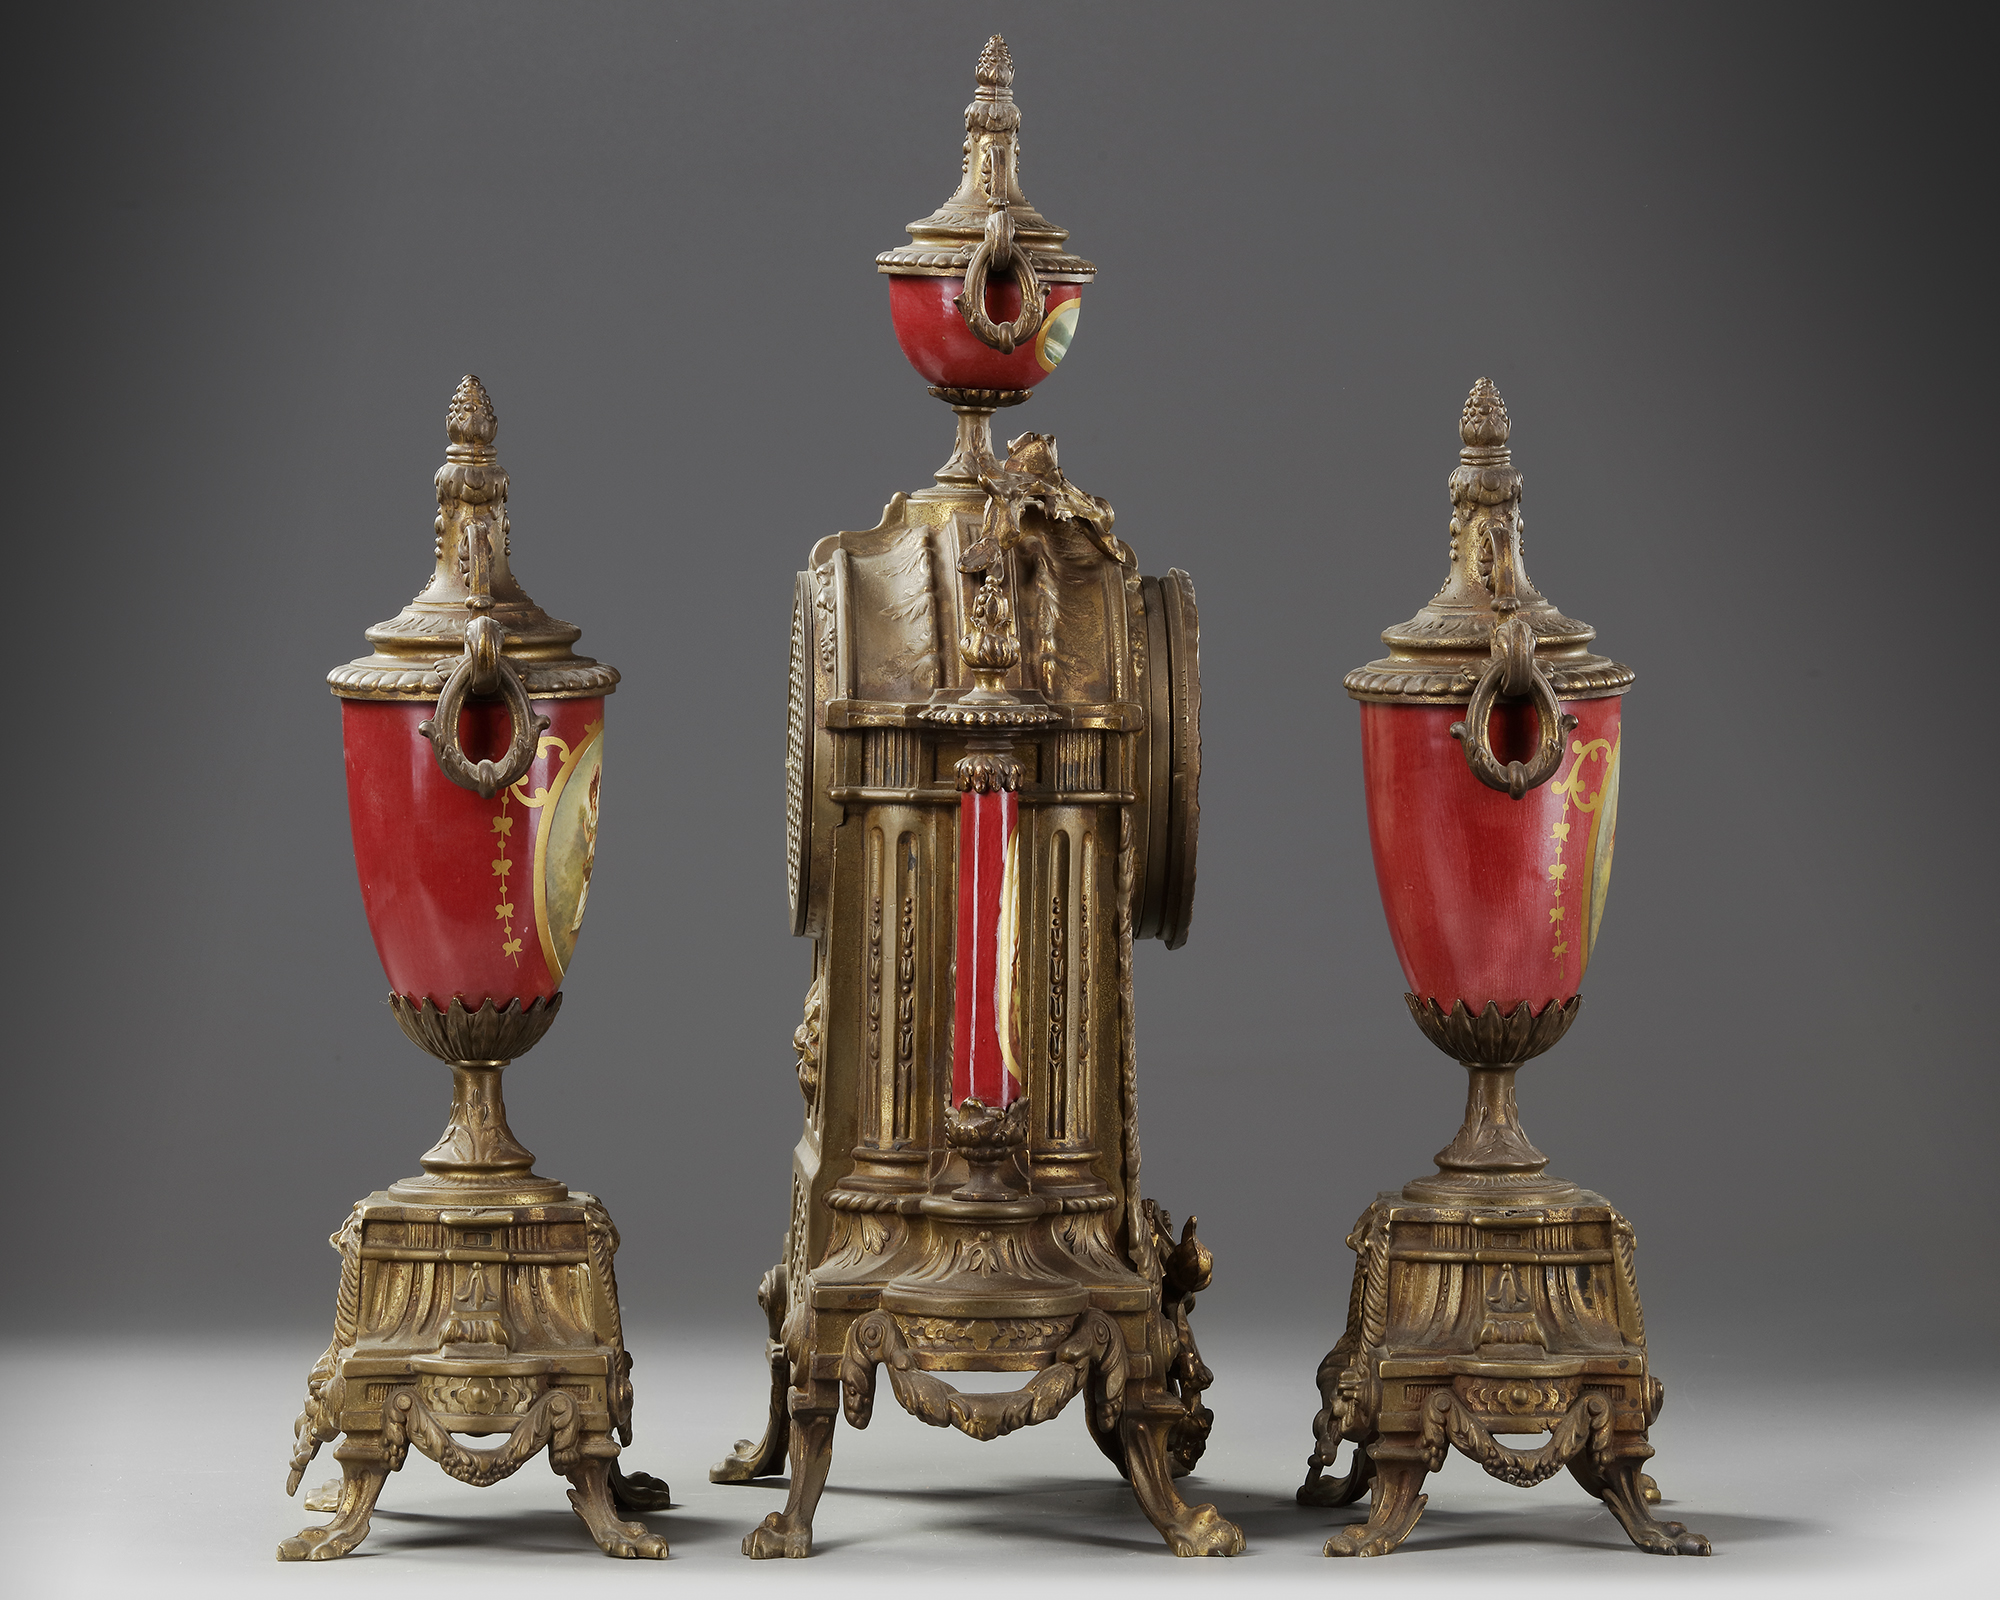 A SPELTER AND RED PORCELAIN CLOCK SET, 19TH CENTURY - Image 3 of 4